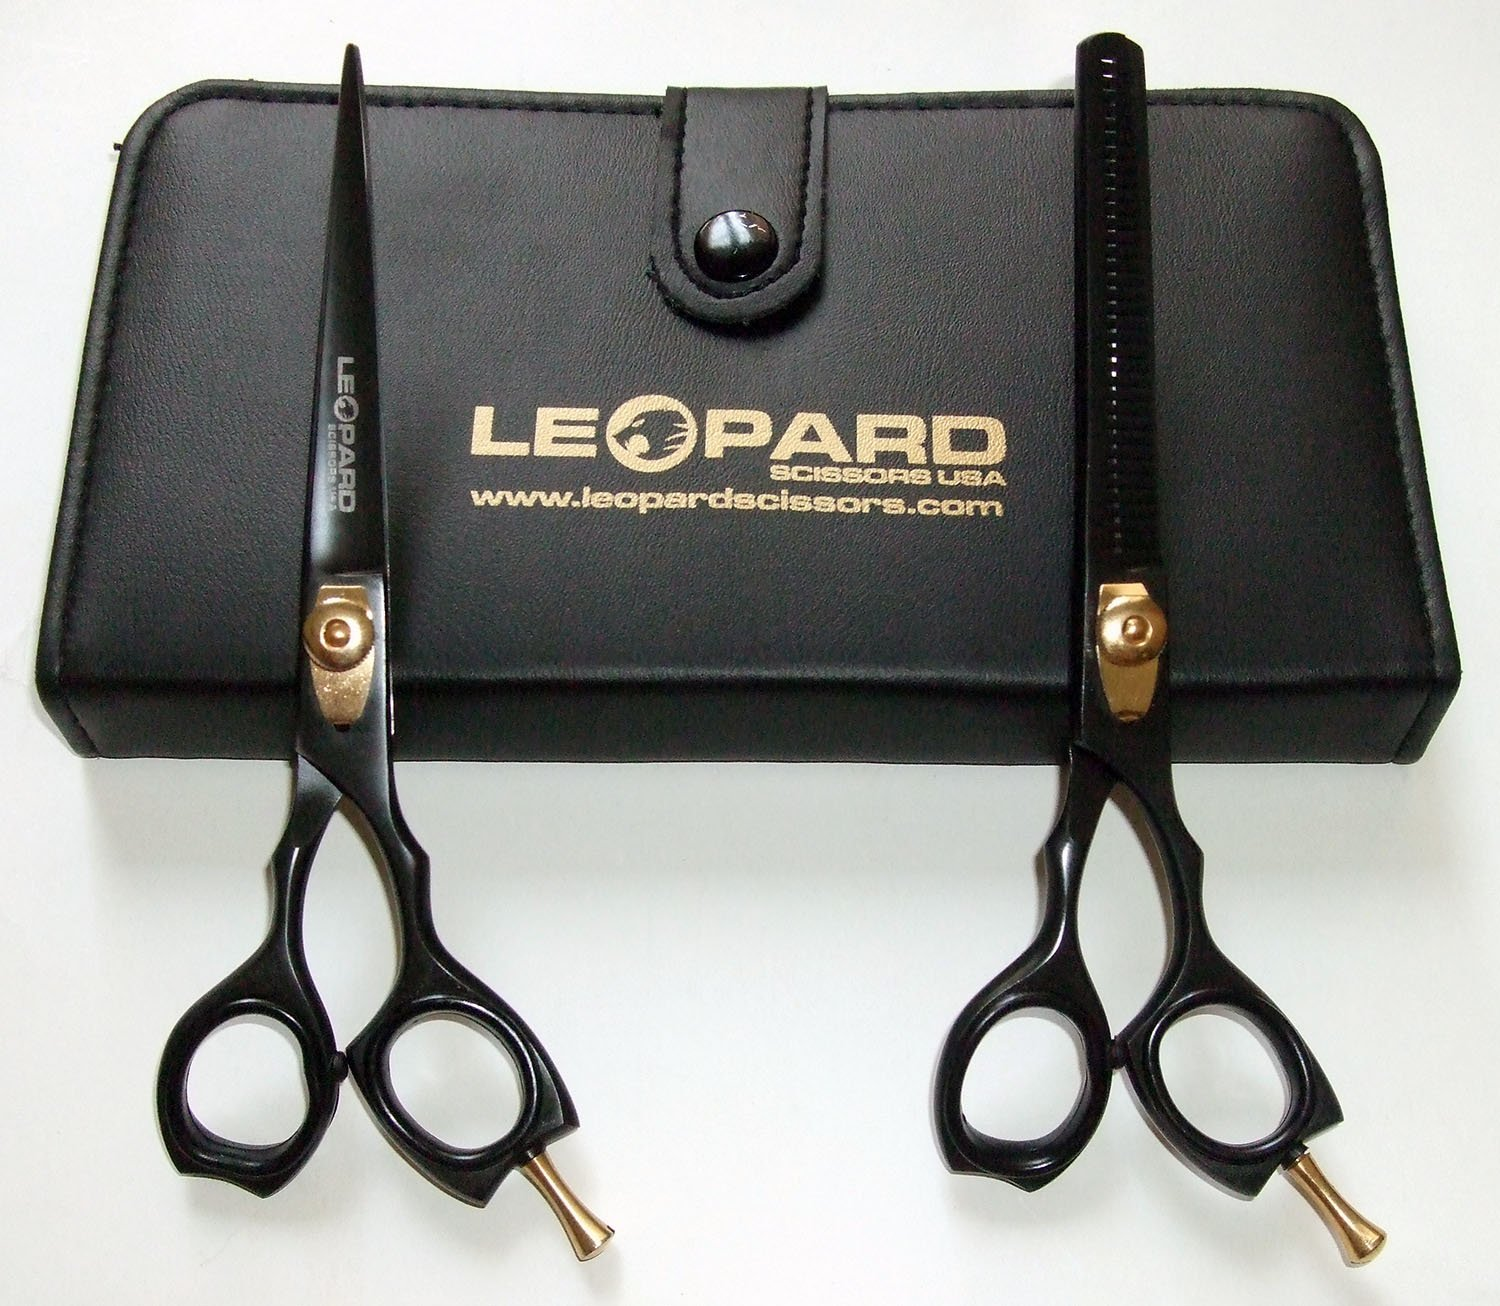 "Professional Barber Hairdressing Shears Right Hand Scissors & Thinner Hair Cutting Shears Barber Salon Styling Scissors Set 6"" Japanese Steel with Free Case Ls-600"